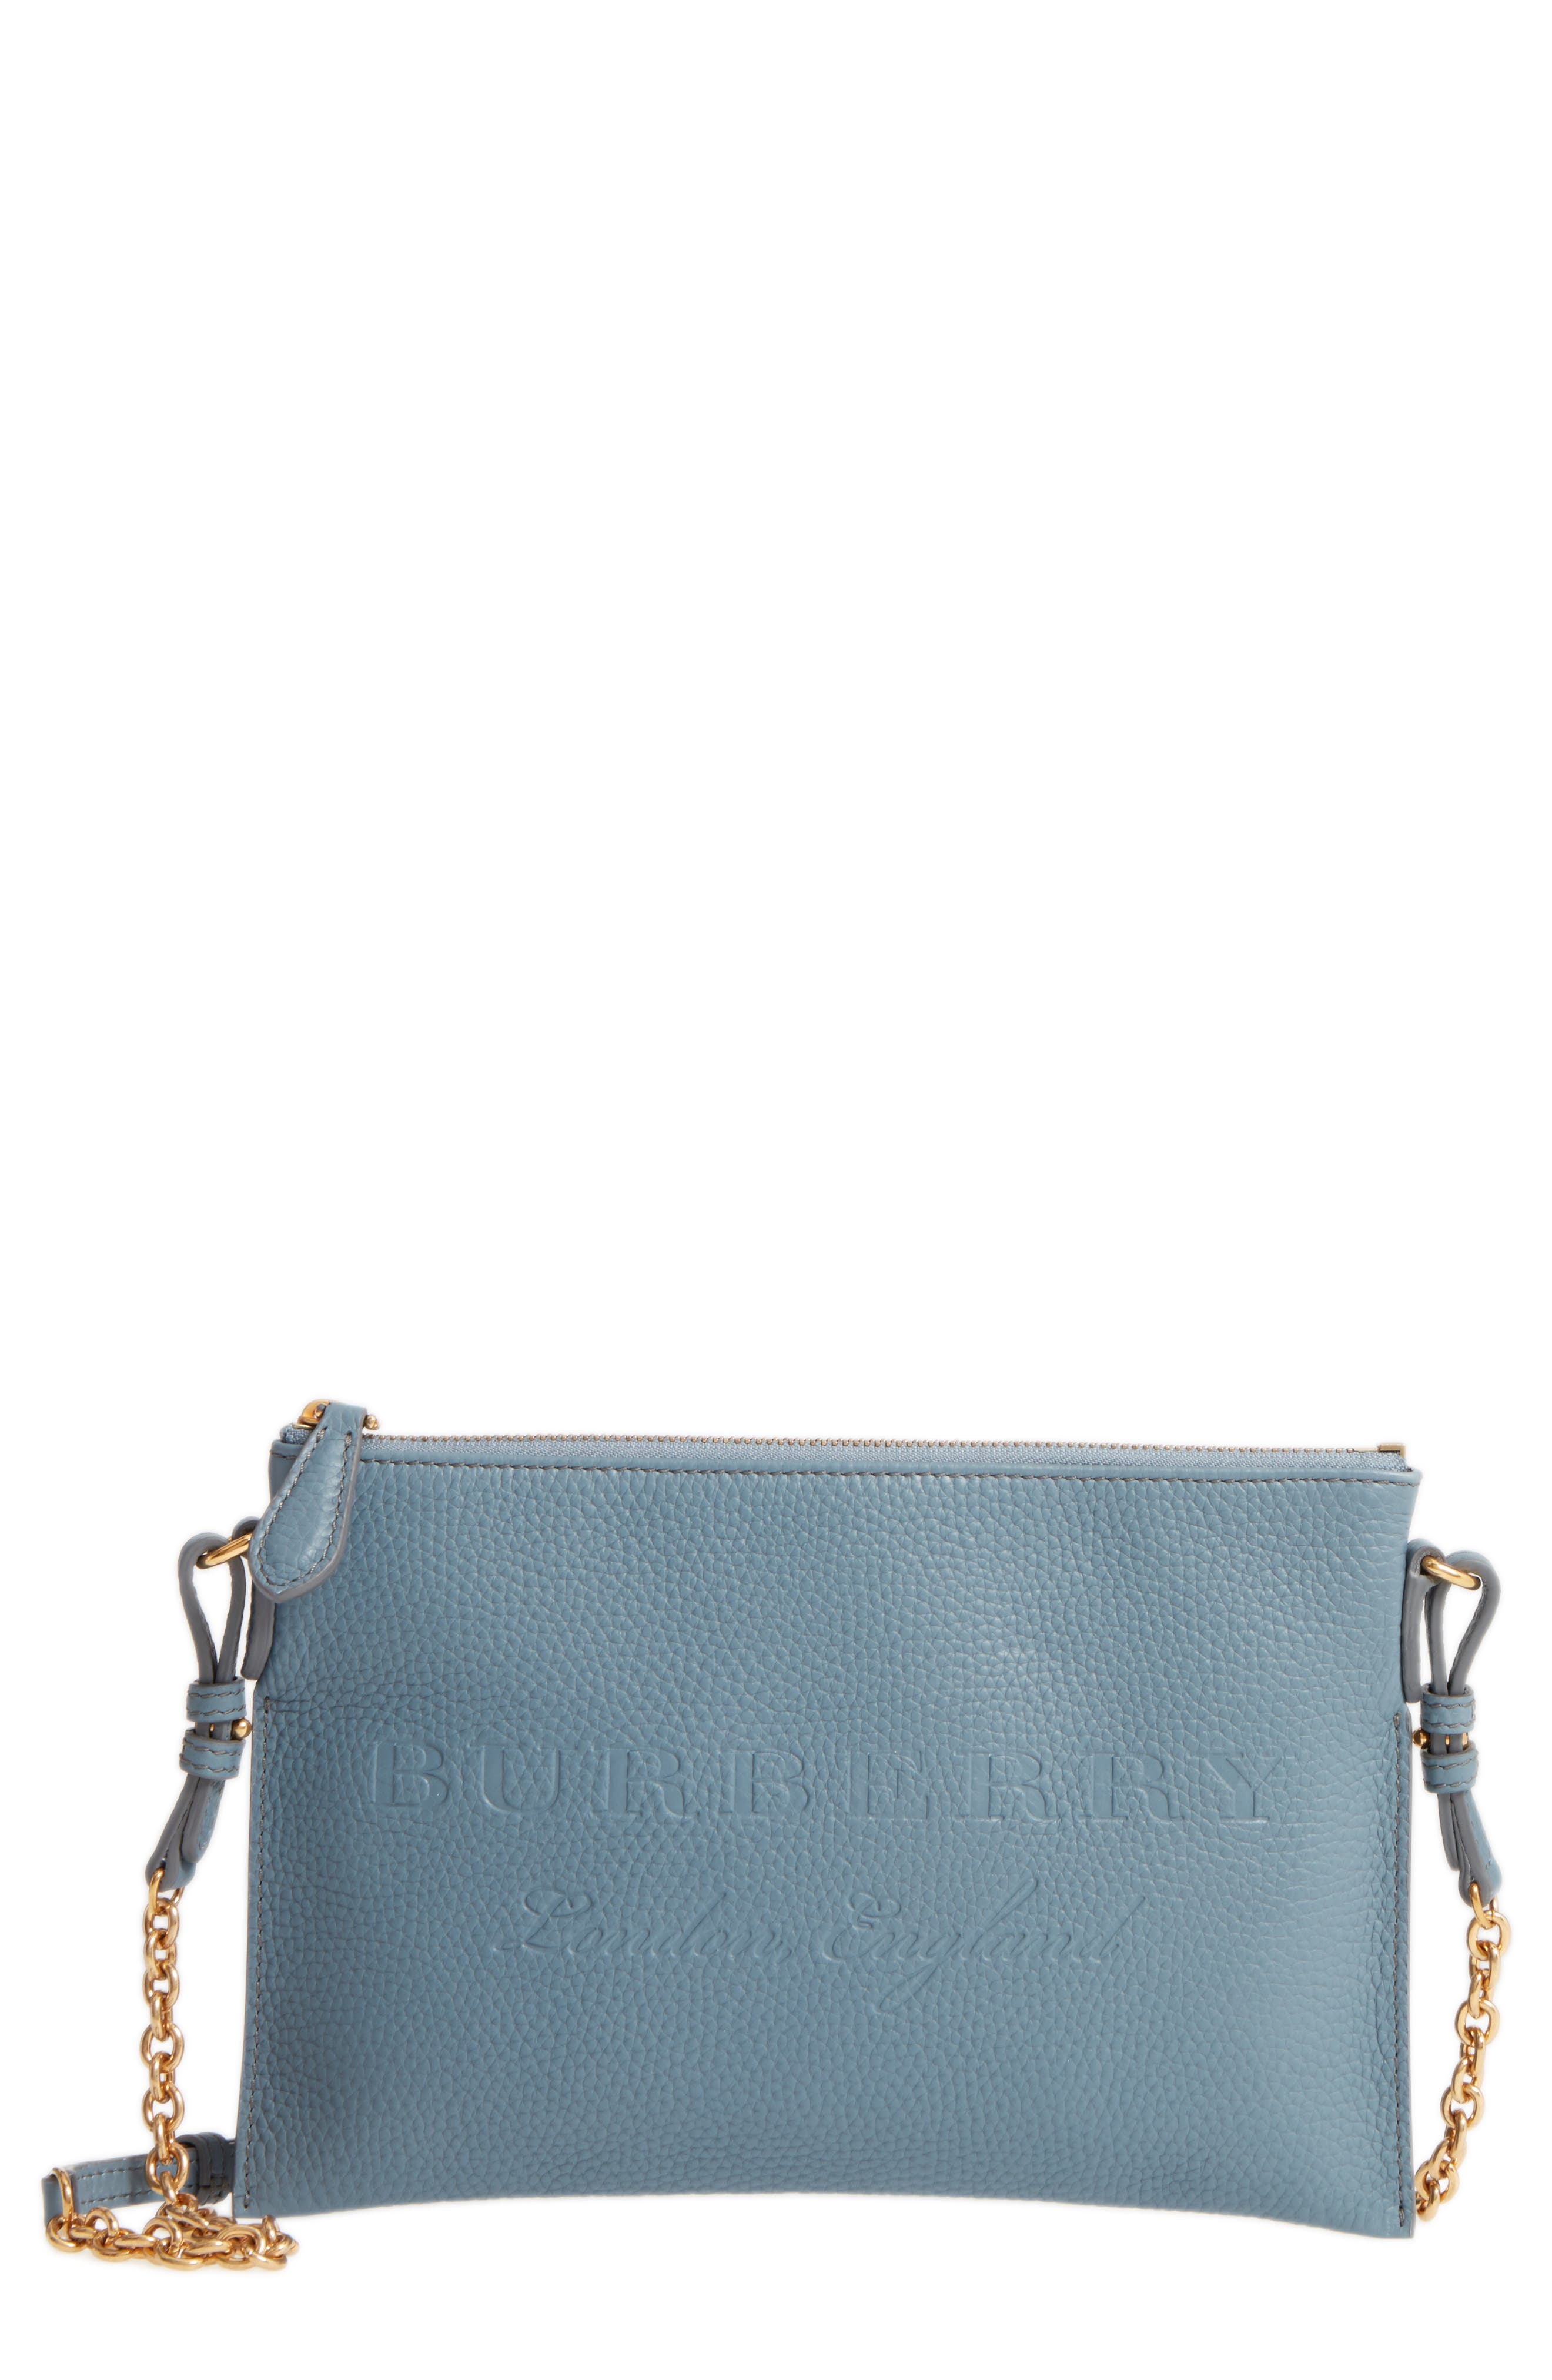 Peyton Leather Crossbody Bag,                         Main,                         color, Dusty Teal Blue